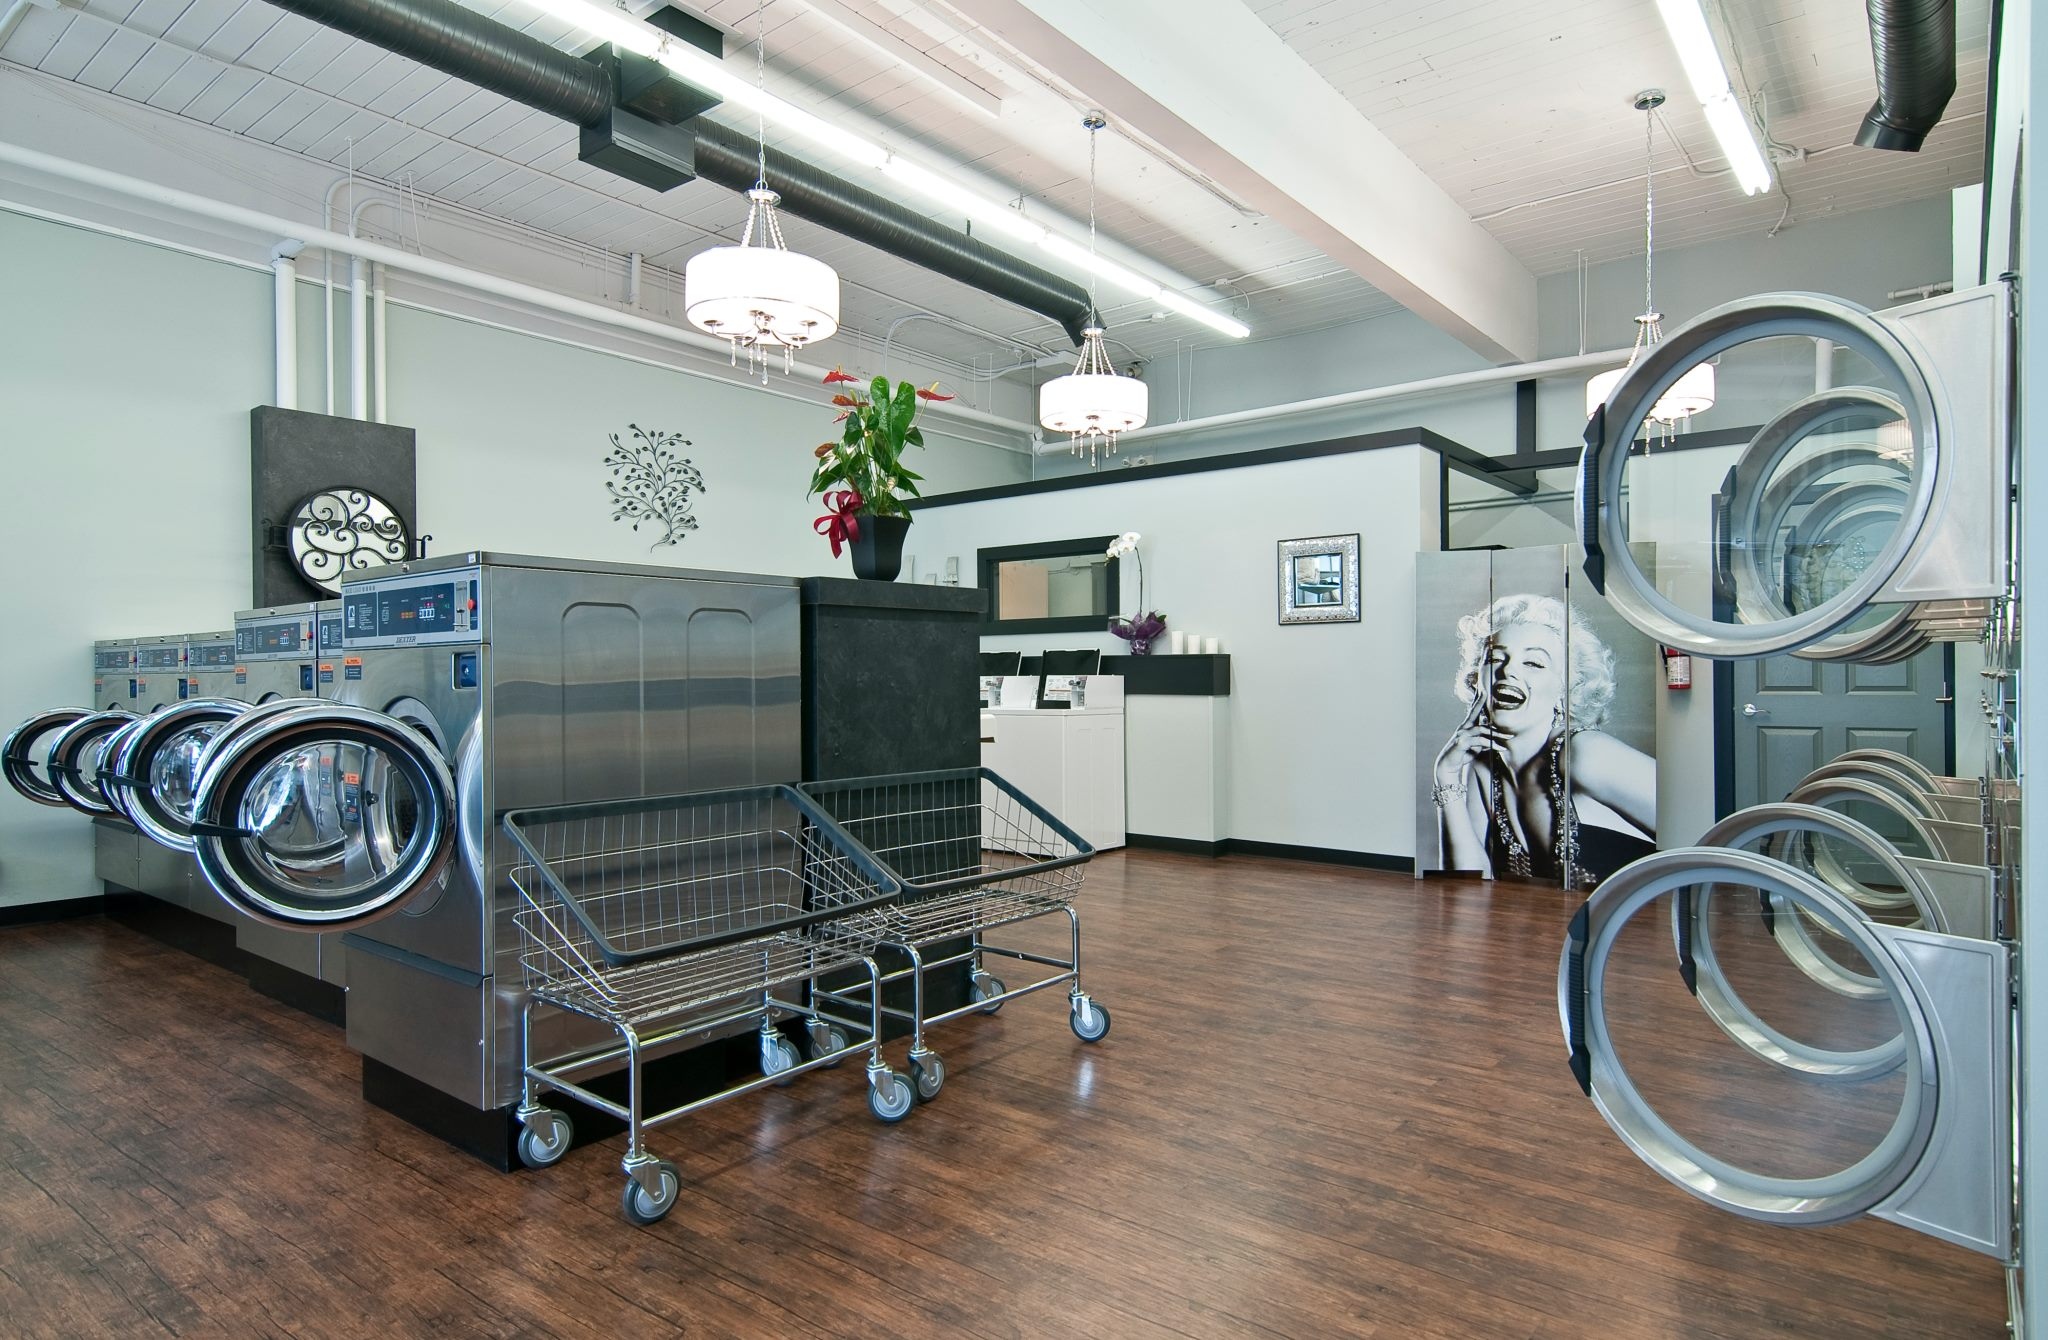 Laundromat drycleaners